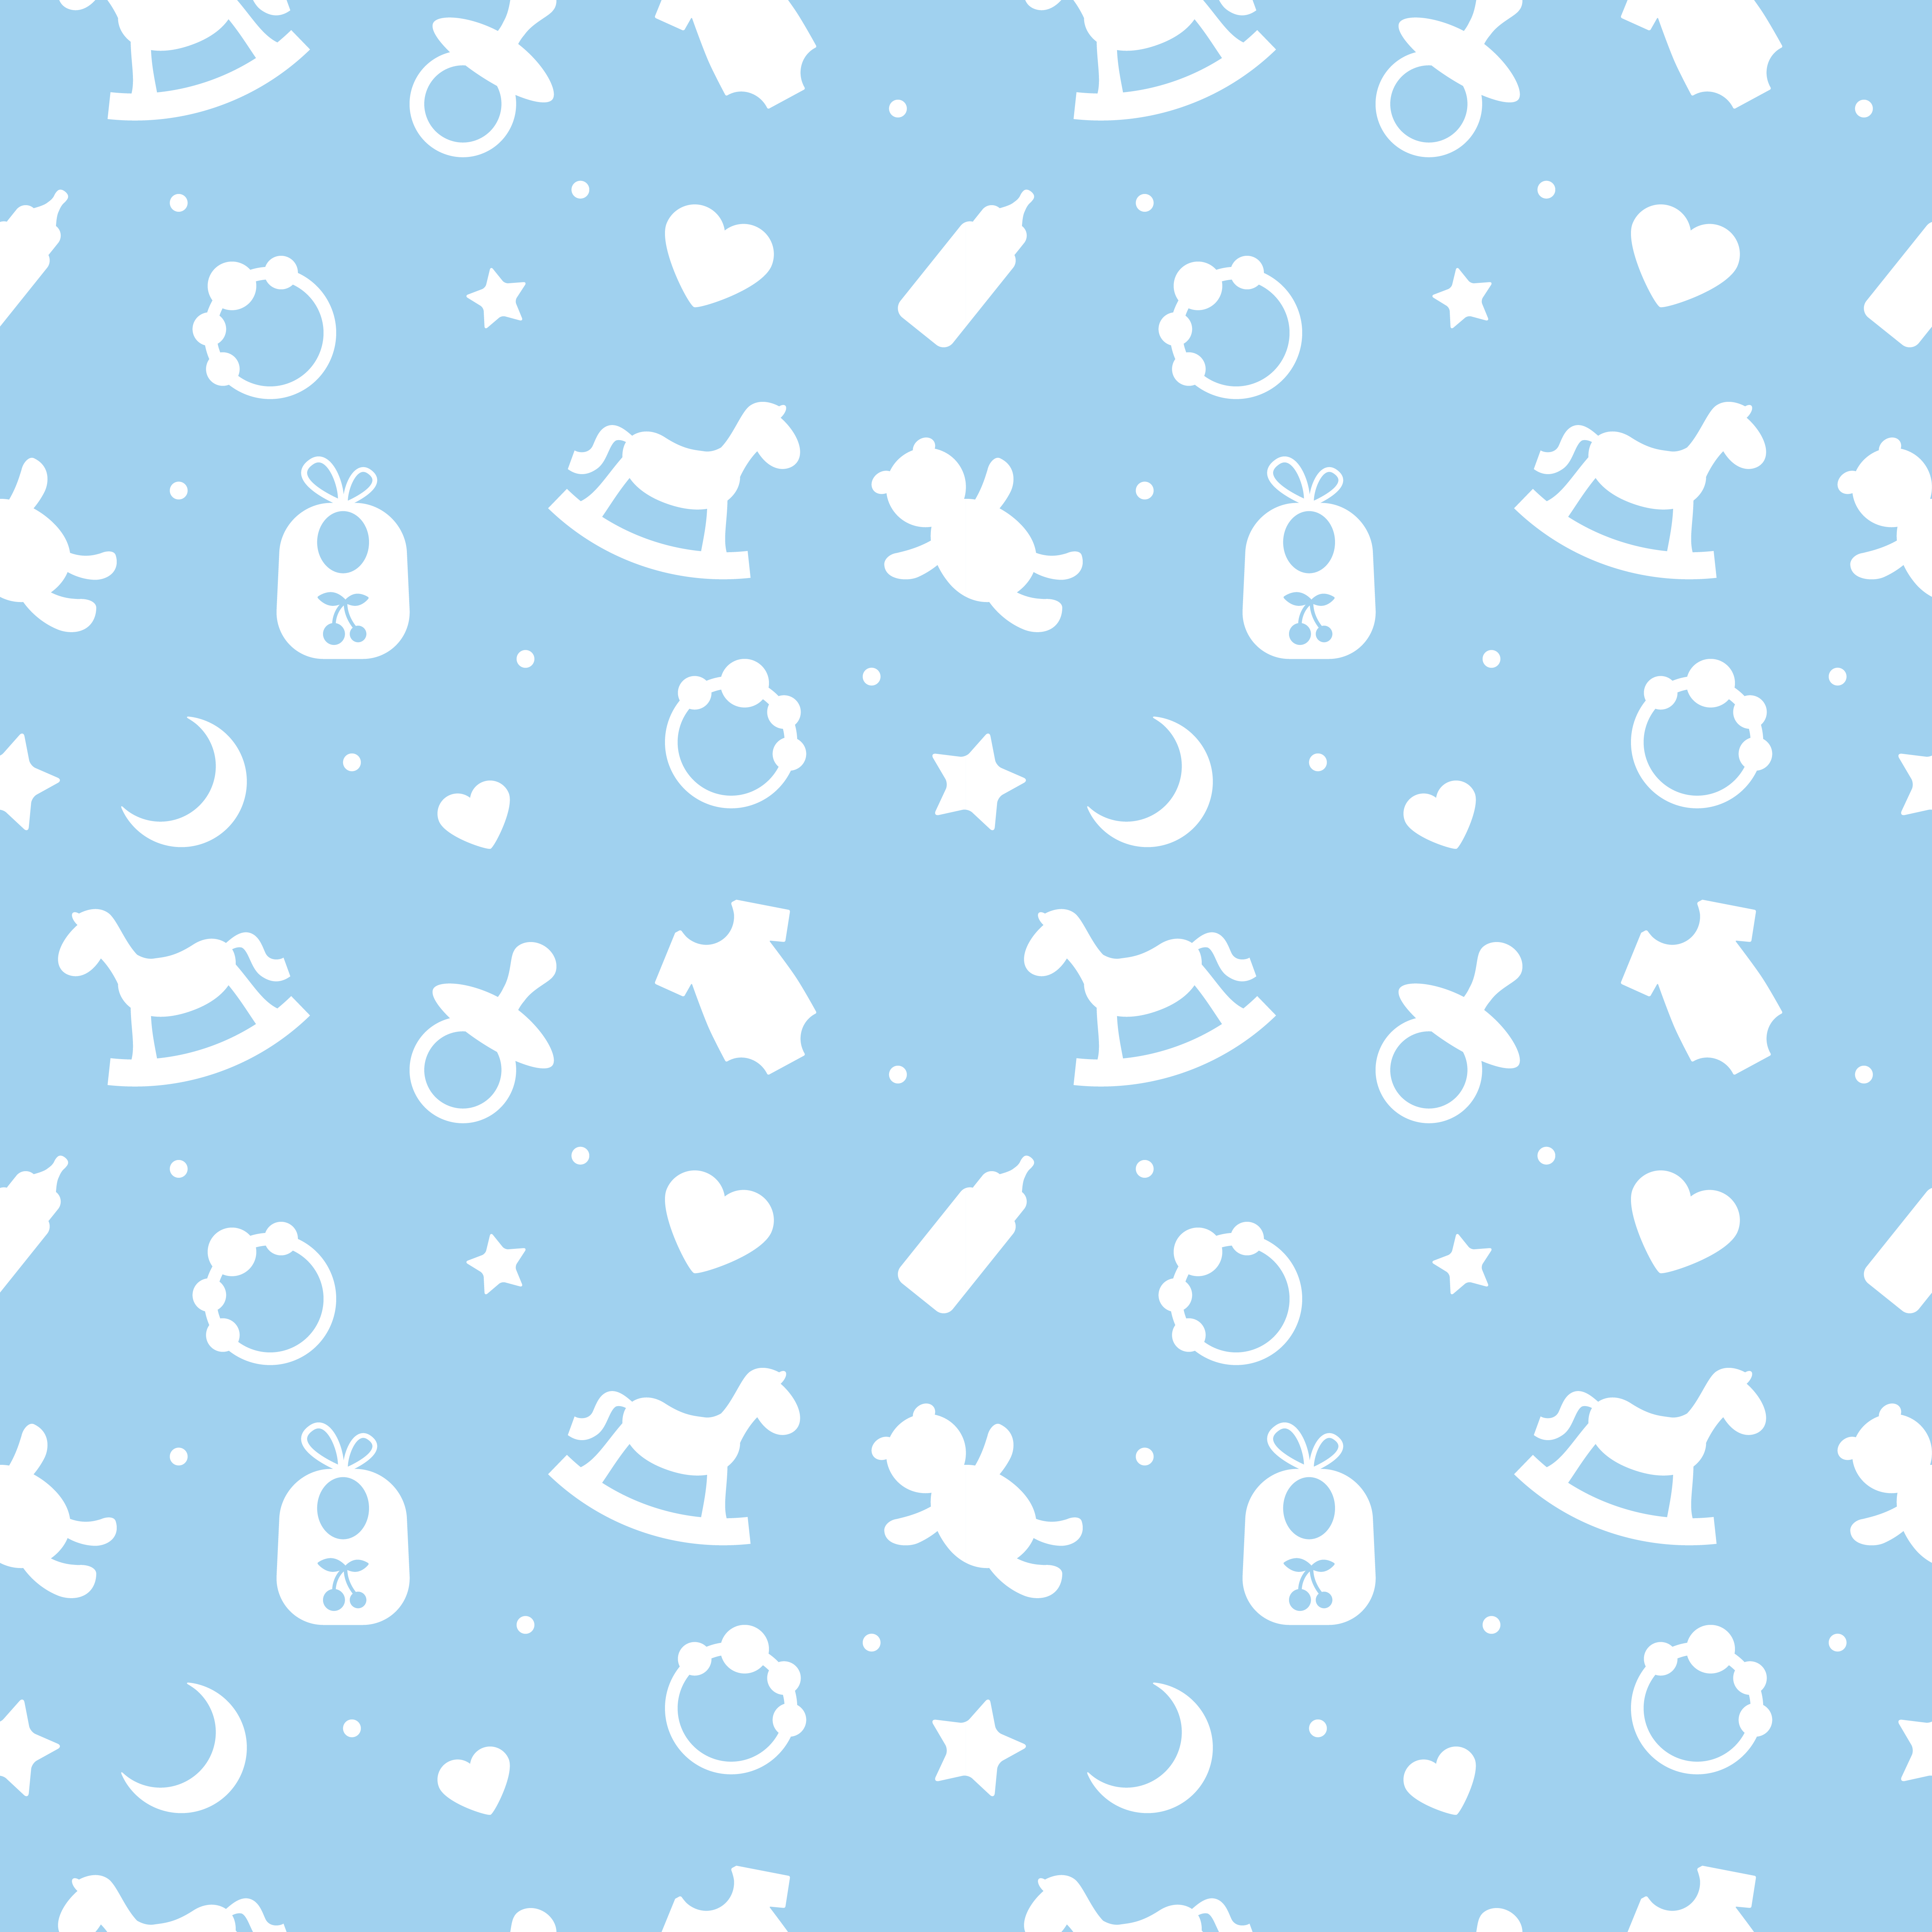 Pin By Ramco Lifestyles On Designs For Baby Baby Boy Background Baby Prints Baby Shower Background